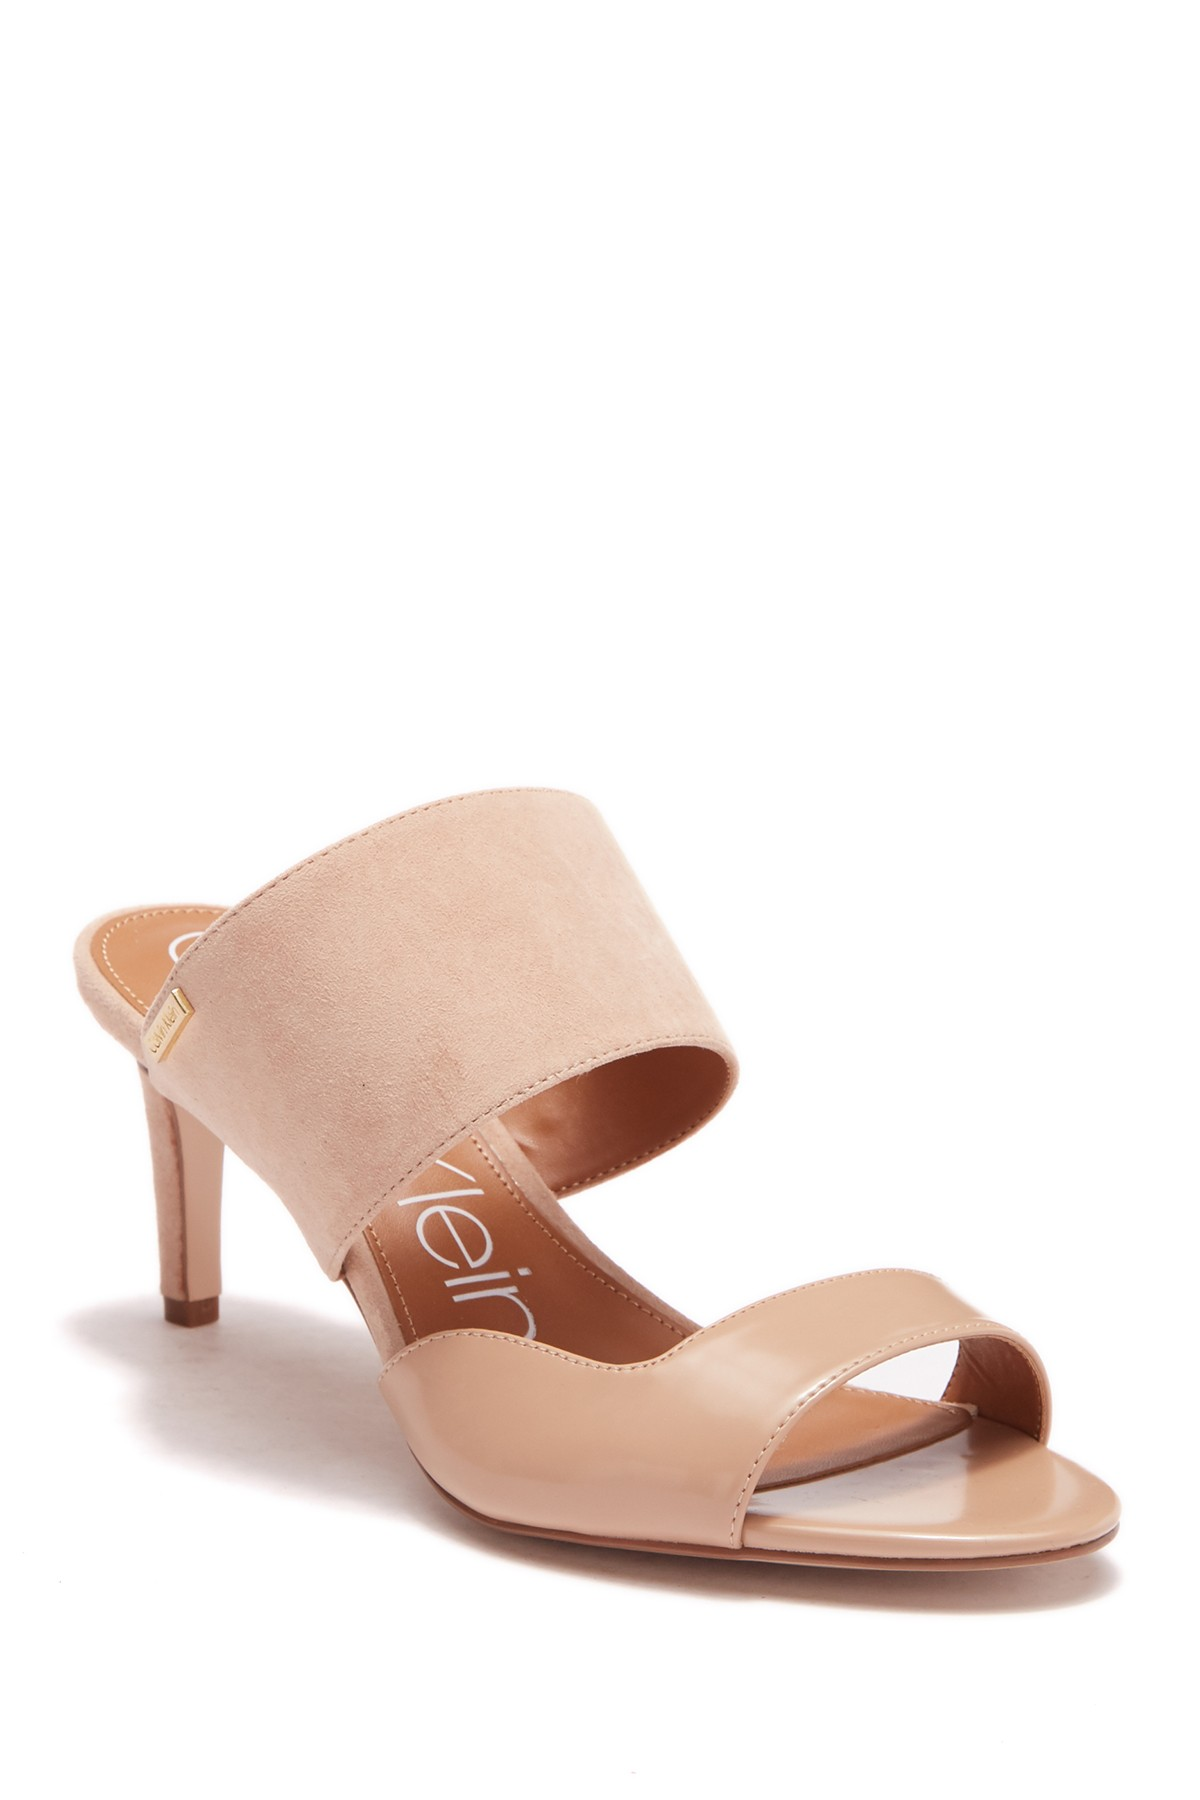 2faa3f26dcce Calvin Klein Womens Clementine Leather Open Toe Casual